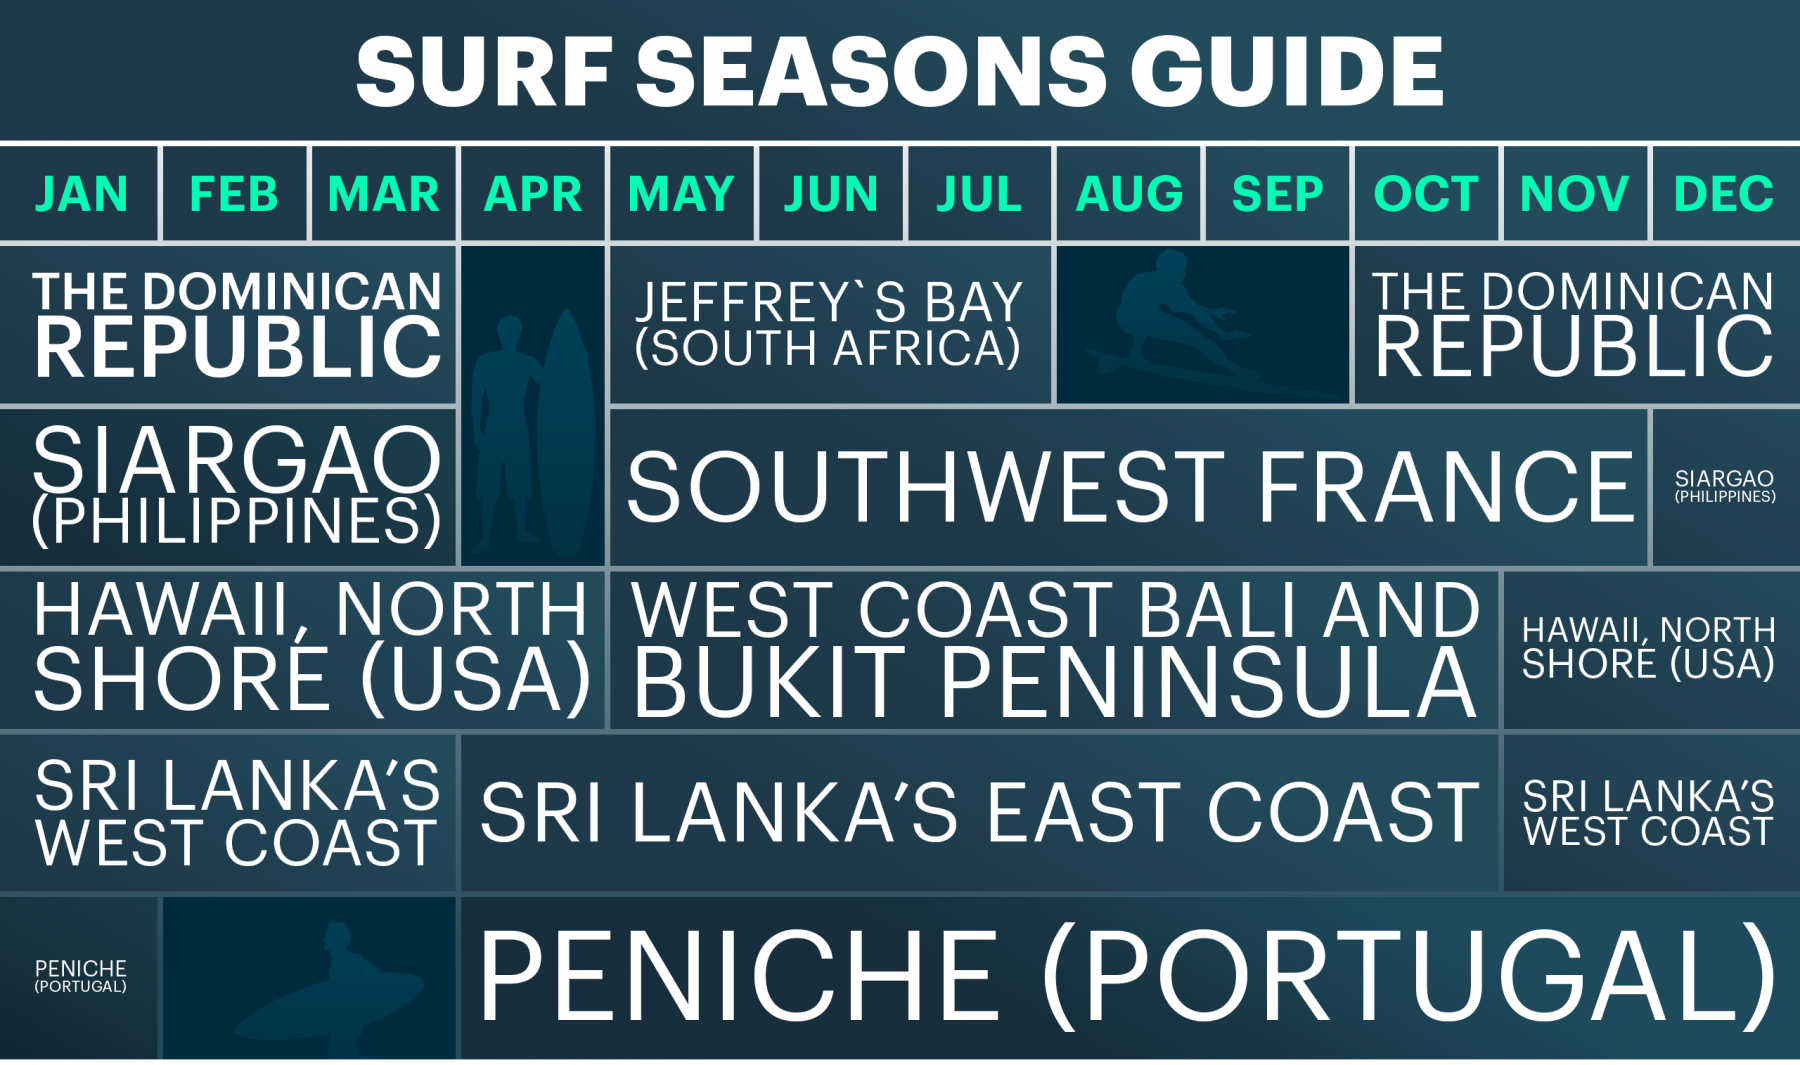 Surf Seasons Guide